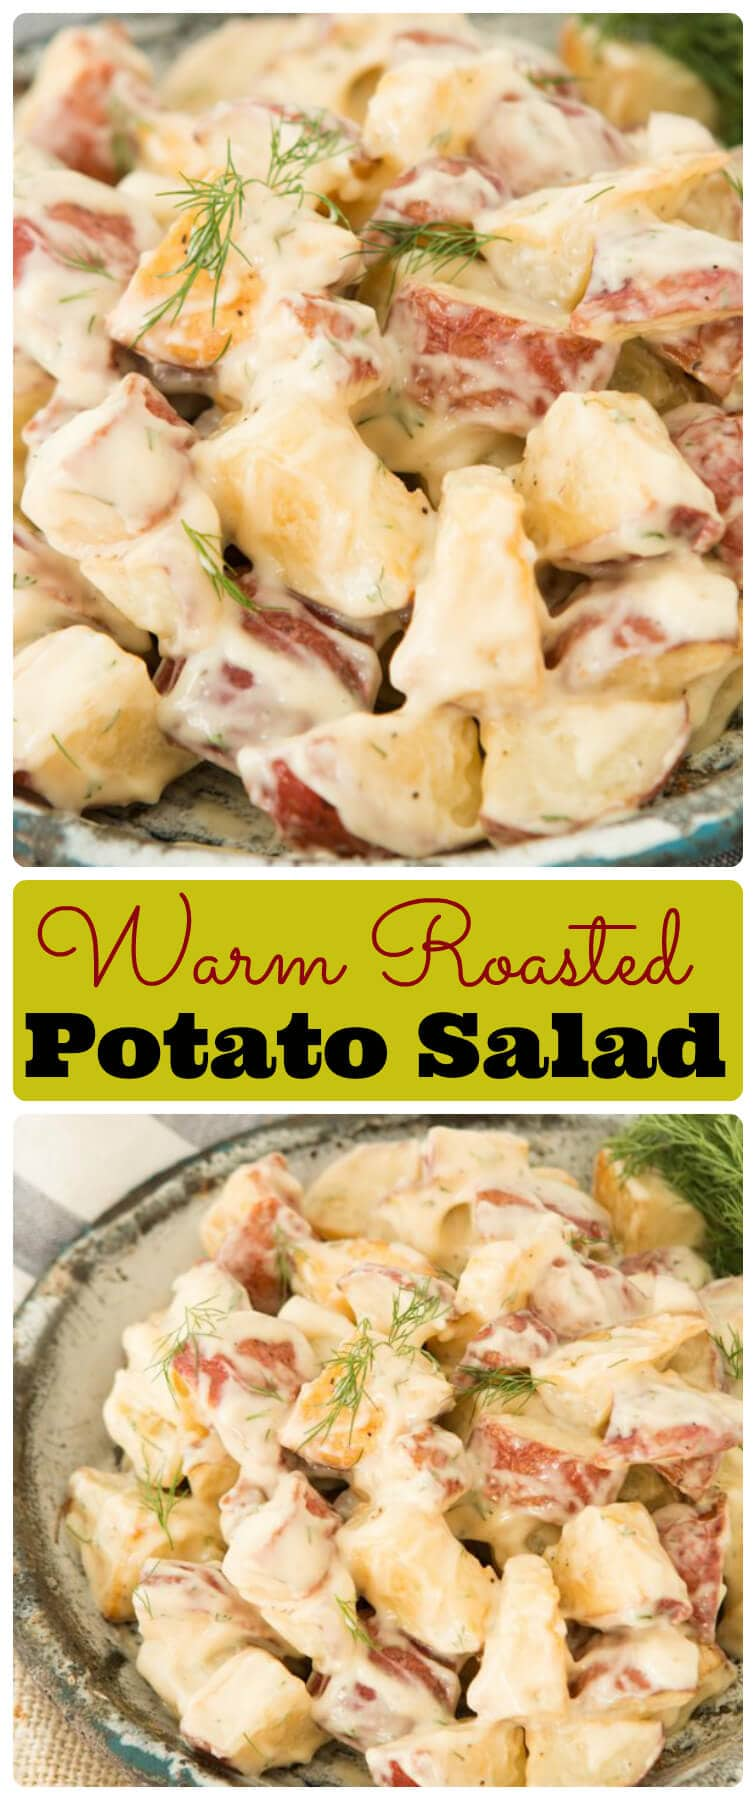 This potato salad was going to be a classic but then we roasted the potatoes and it took things to a whole new lever! We love warm roasted potato salad! ohsweetbasil.com